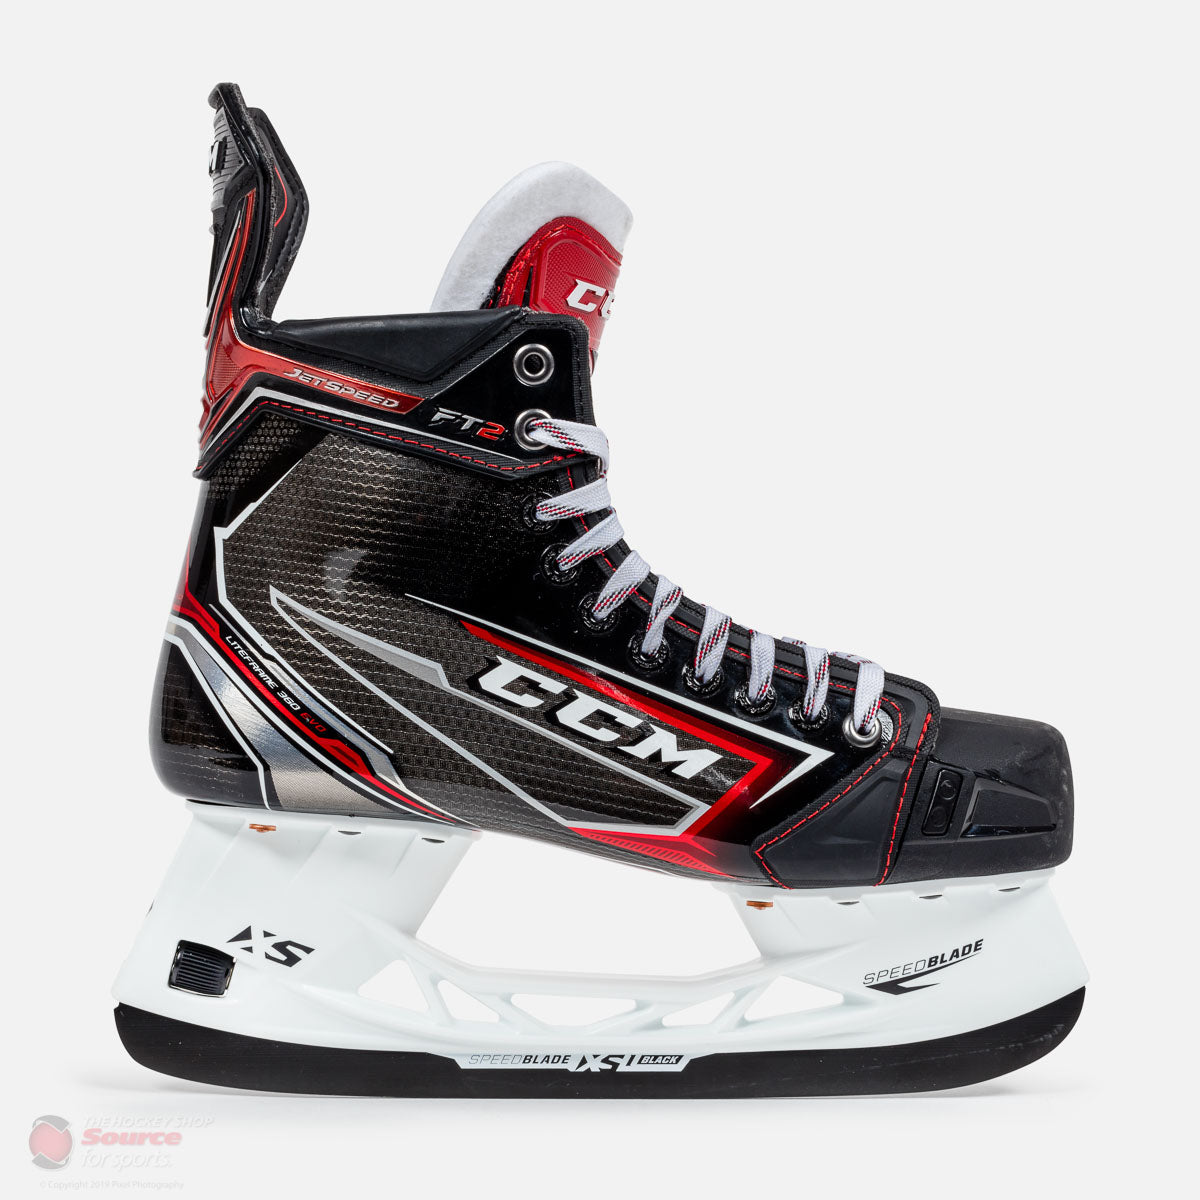 2019 CCM Jetspeed FT2 Hockey Skates Review